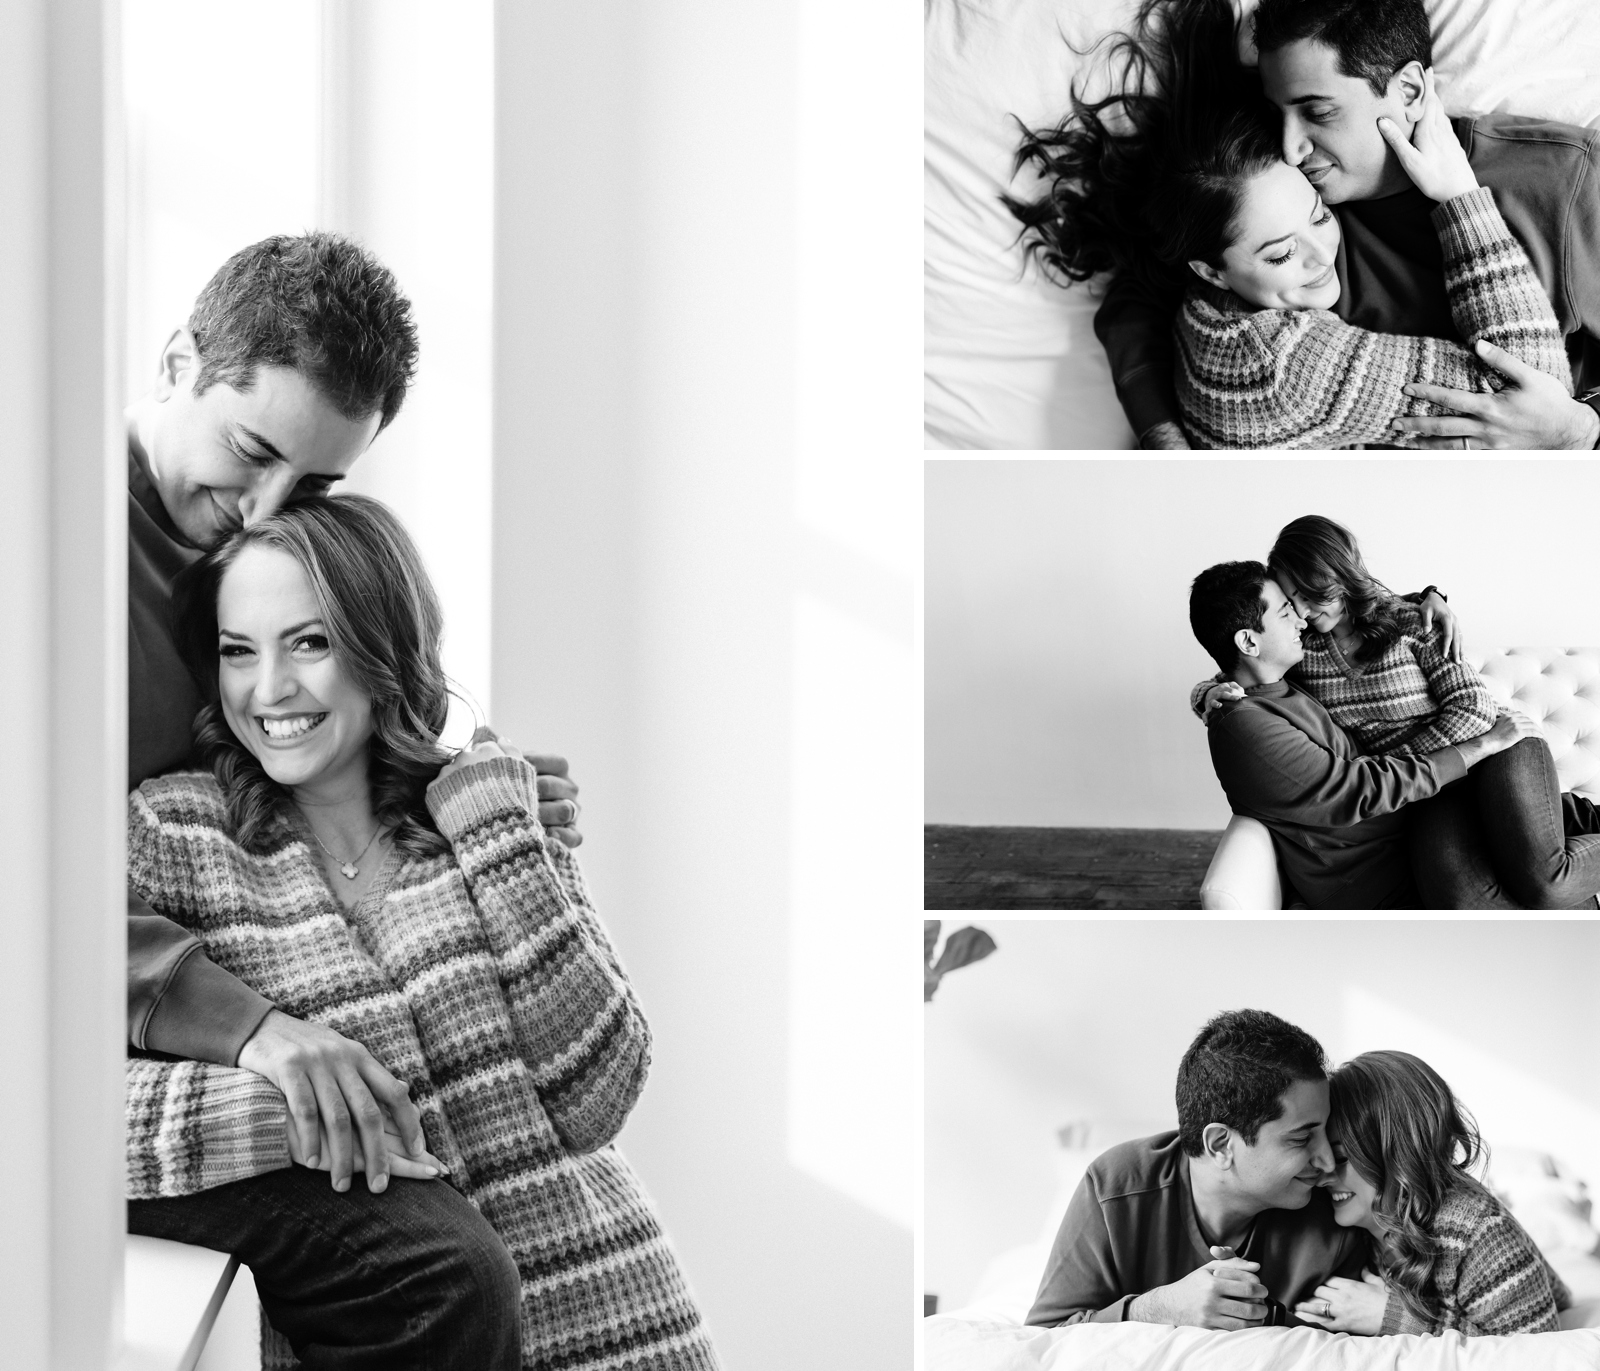 chicago-maternity-modern-lifestyle-photographer-jenny-grimm-pregnancy-announcement-photography_0009.jpg